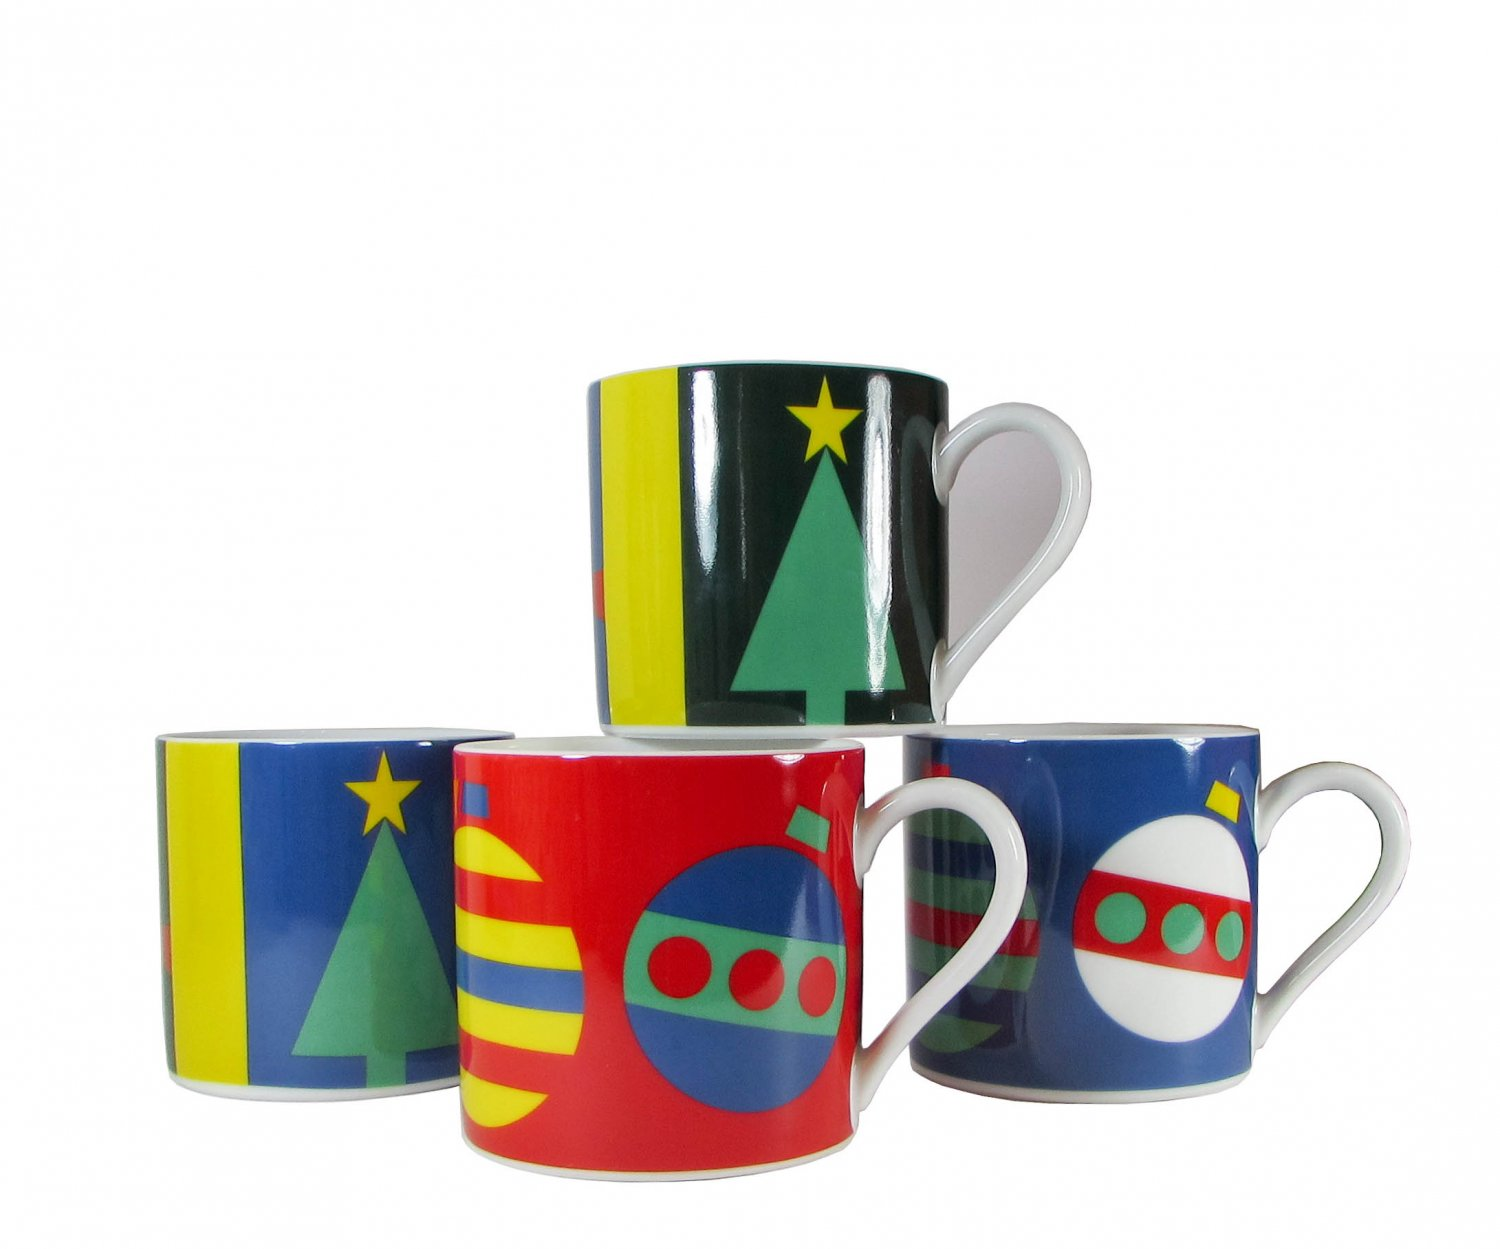 Set Of 4 Porcelain Mugs Holiday Gene Meyer by Museum Of Modern Art, MOMA